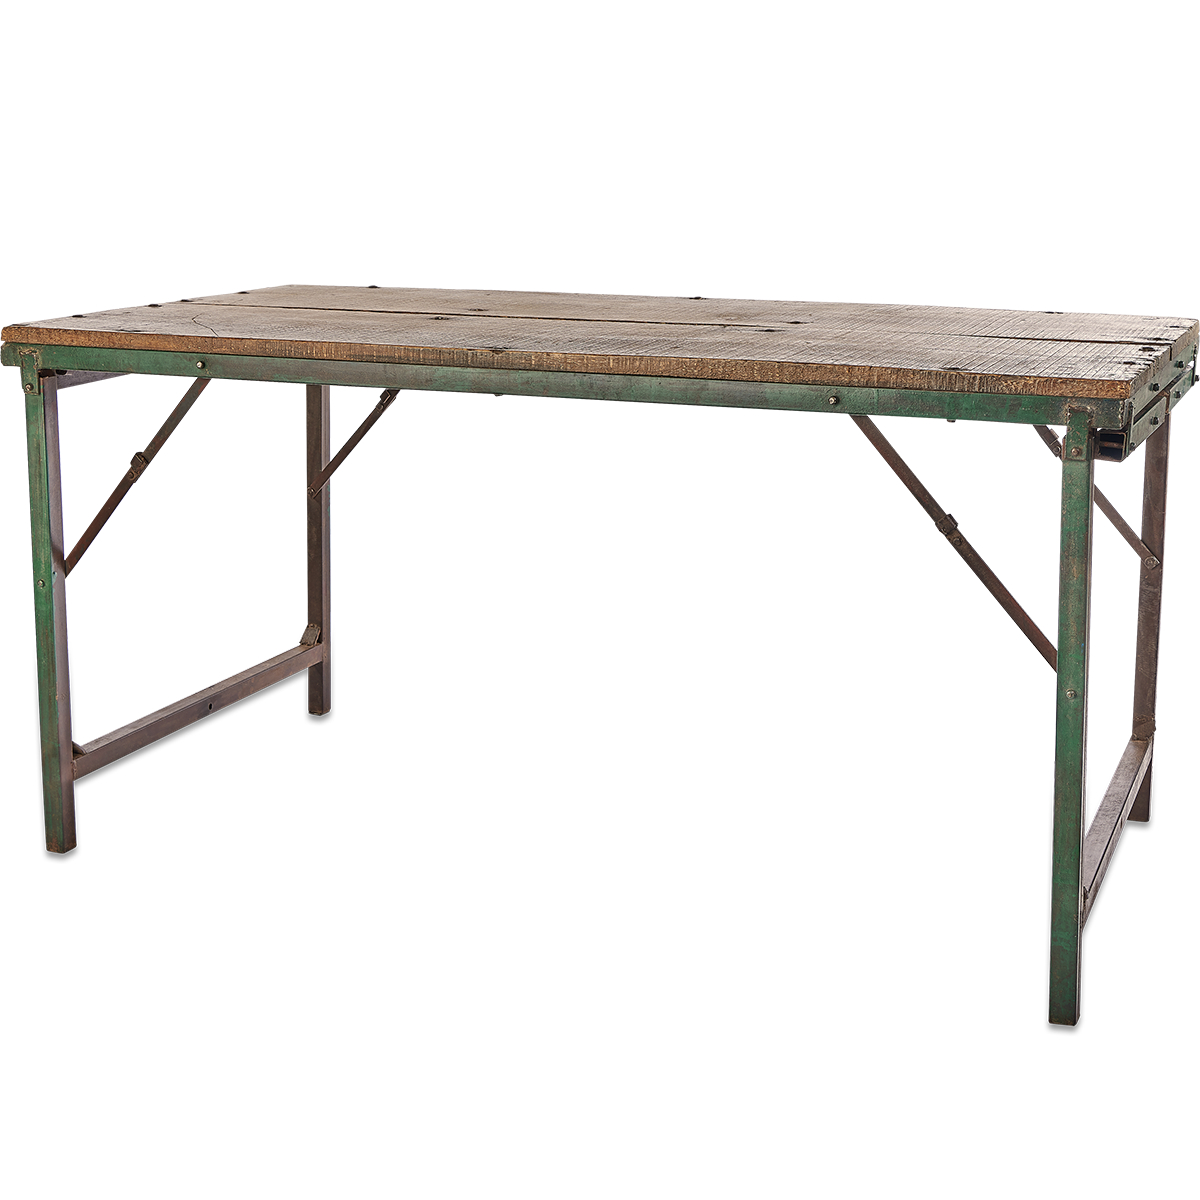 Ishan Reclaimed Folding Dining/coffee Table Intended For Famous Ishan Steel Park Benches (View 22 of 30)